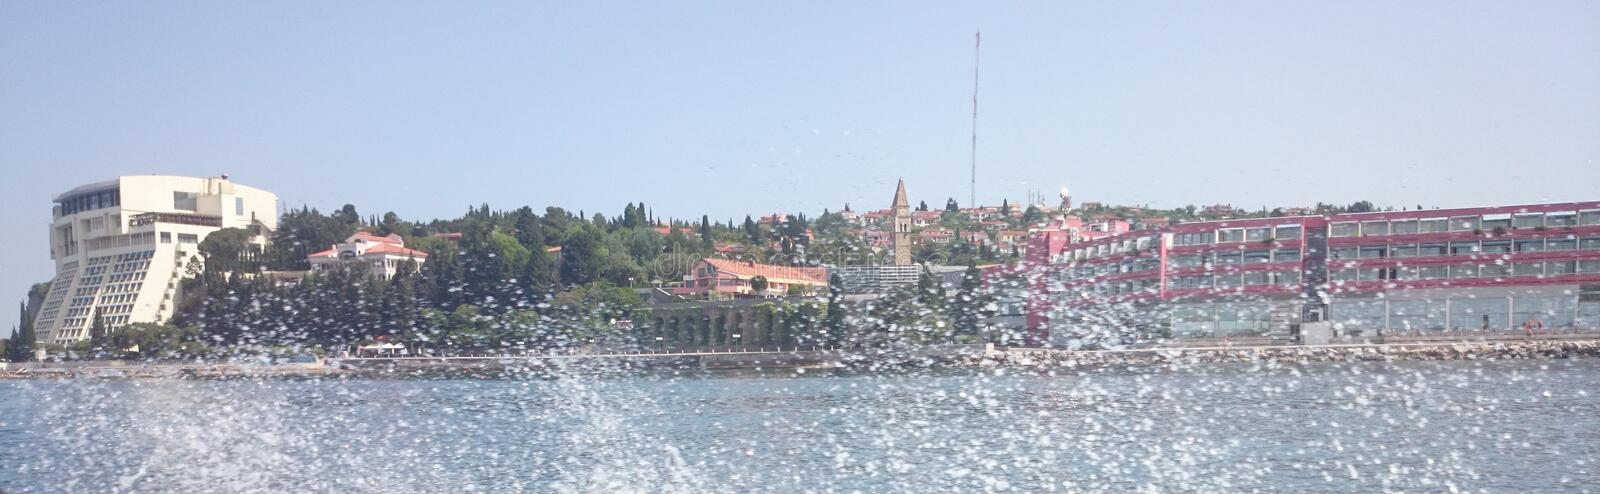 Picture of piran from boat sea splash royalty free stock images